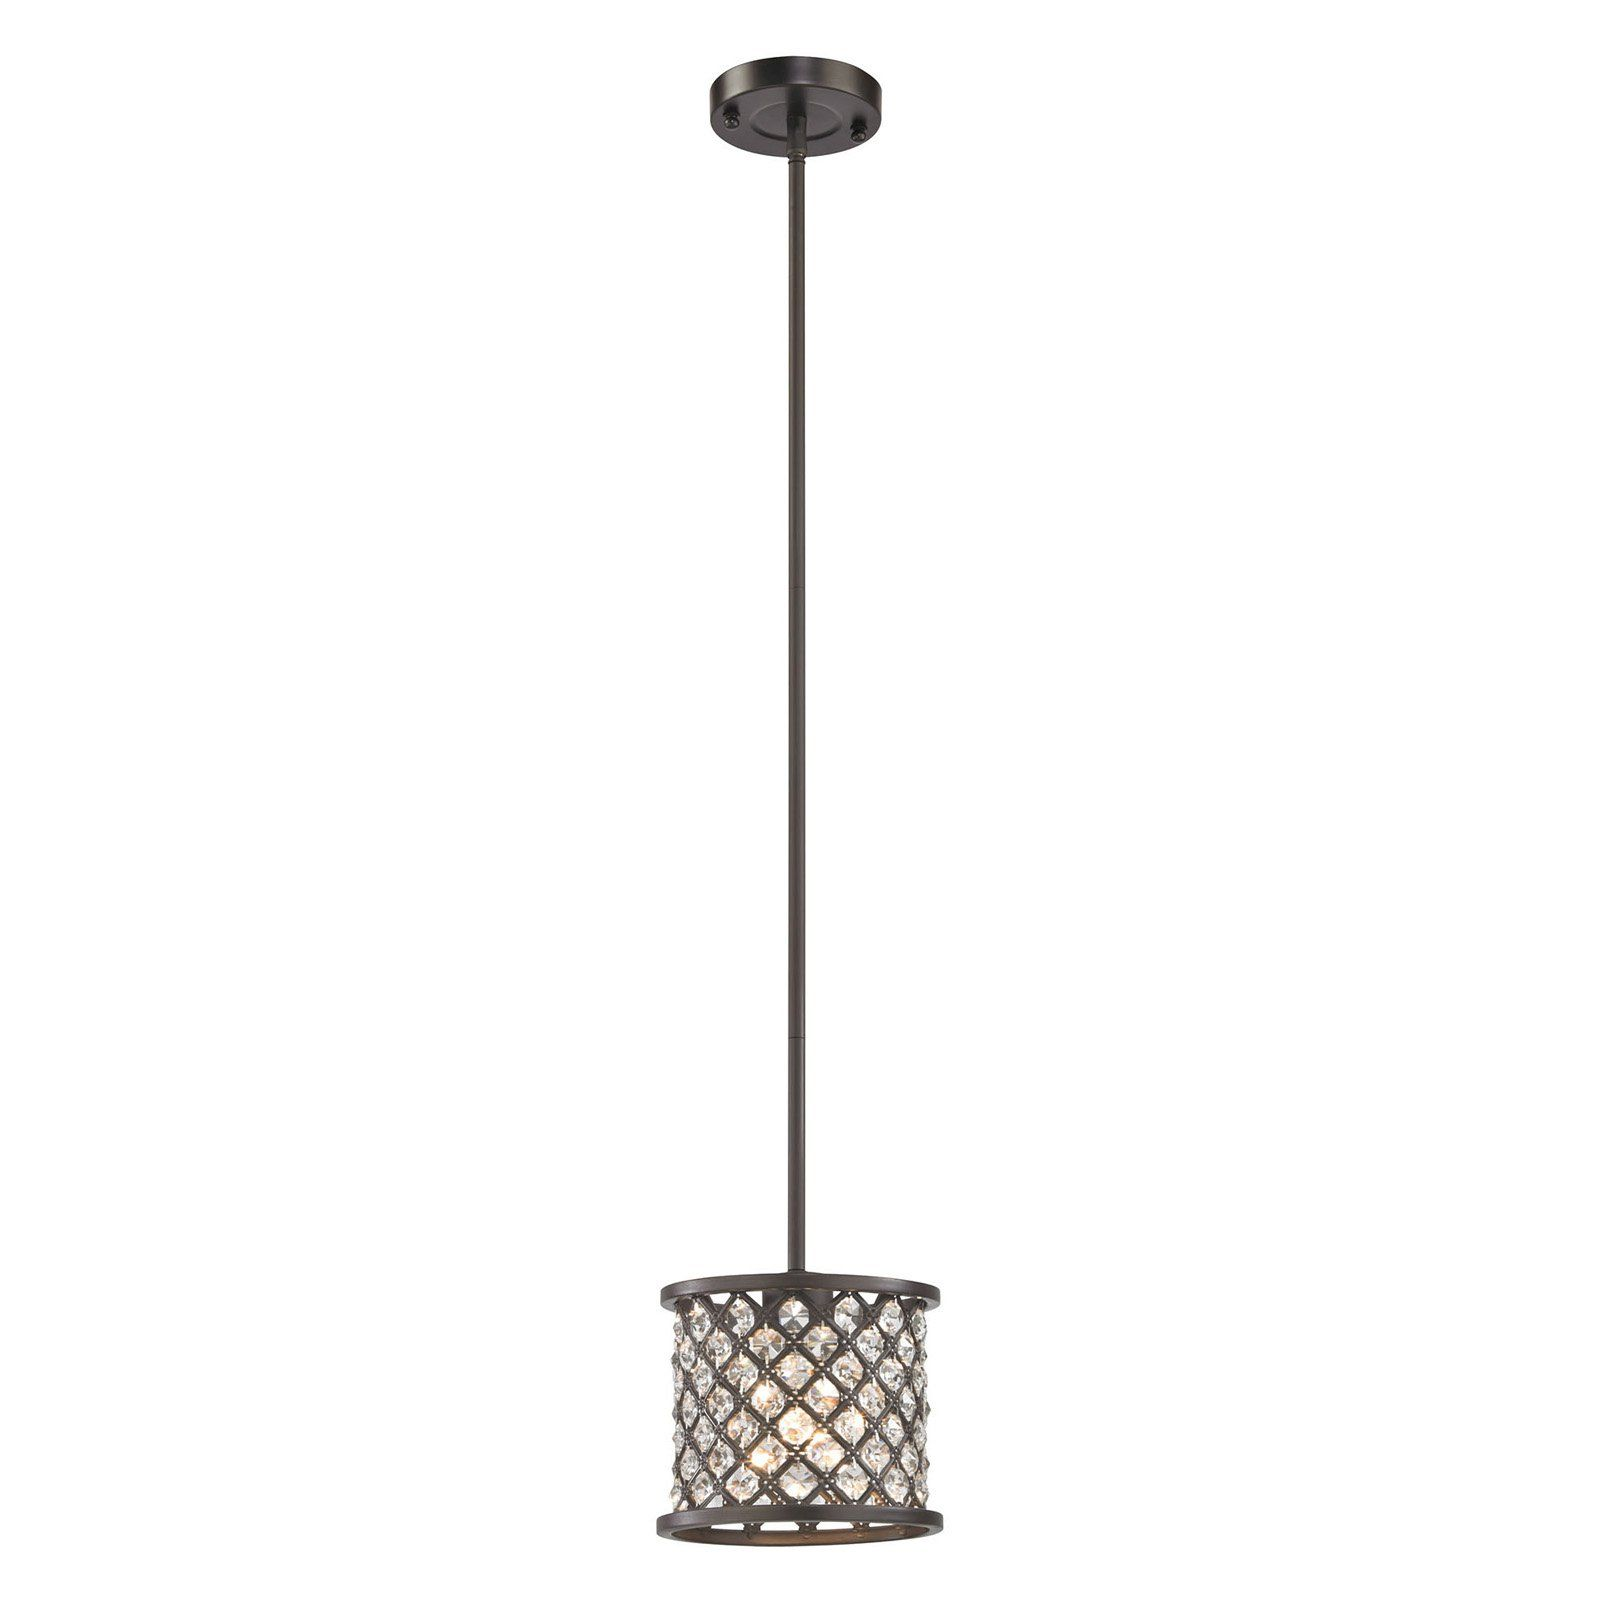 Elk Lighting Modern Farmhouse: Elk Lighting Genevieve 32102/1 Pendant